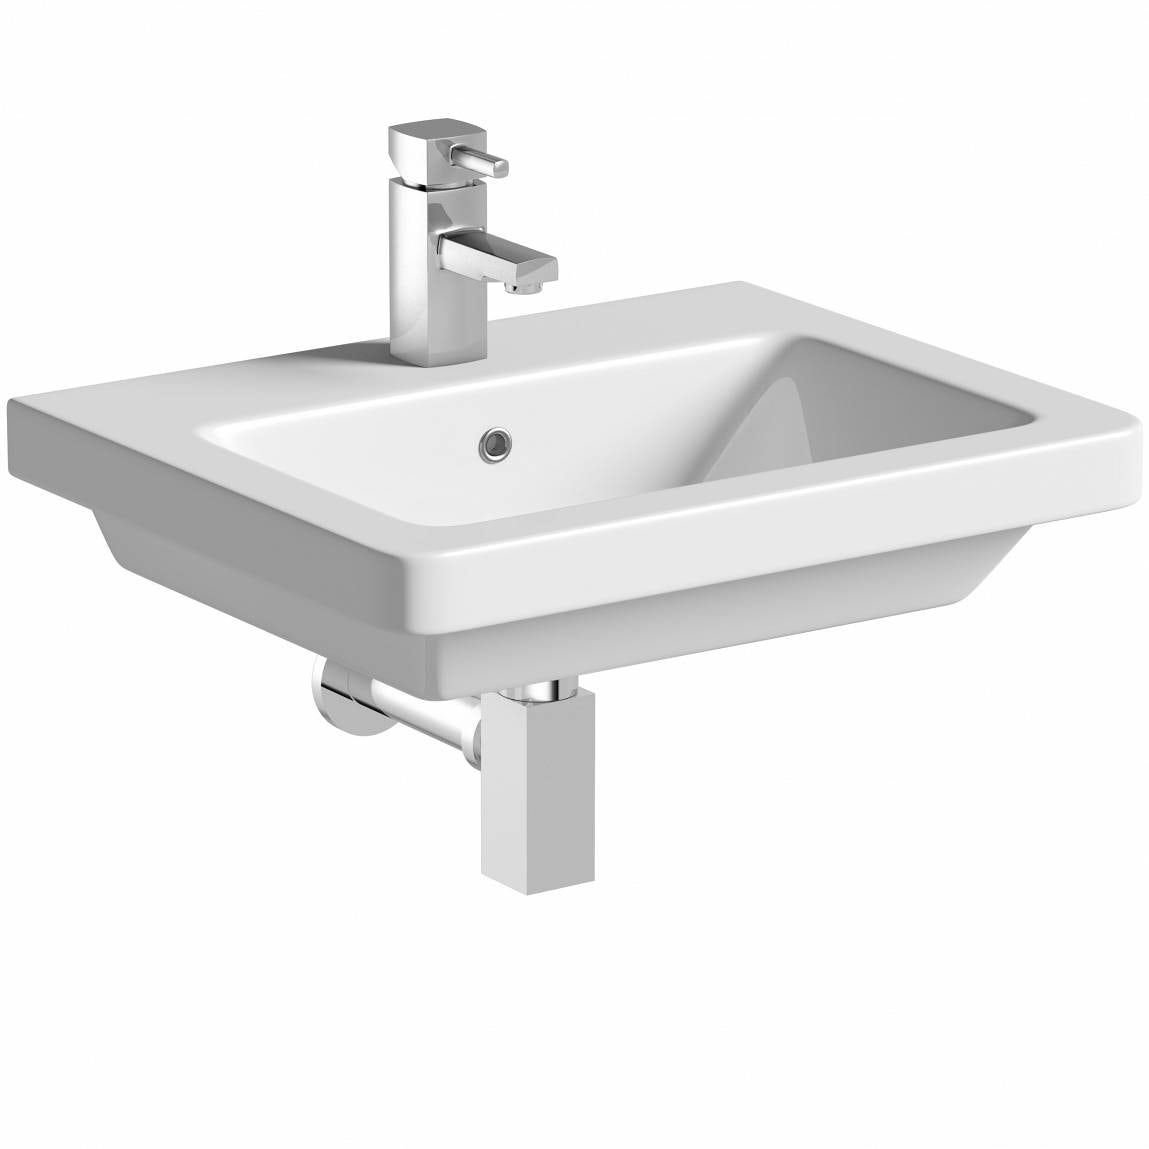 Mode Cooper 1 tap hole wall hung basin 550mm with waste